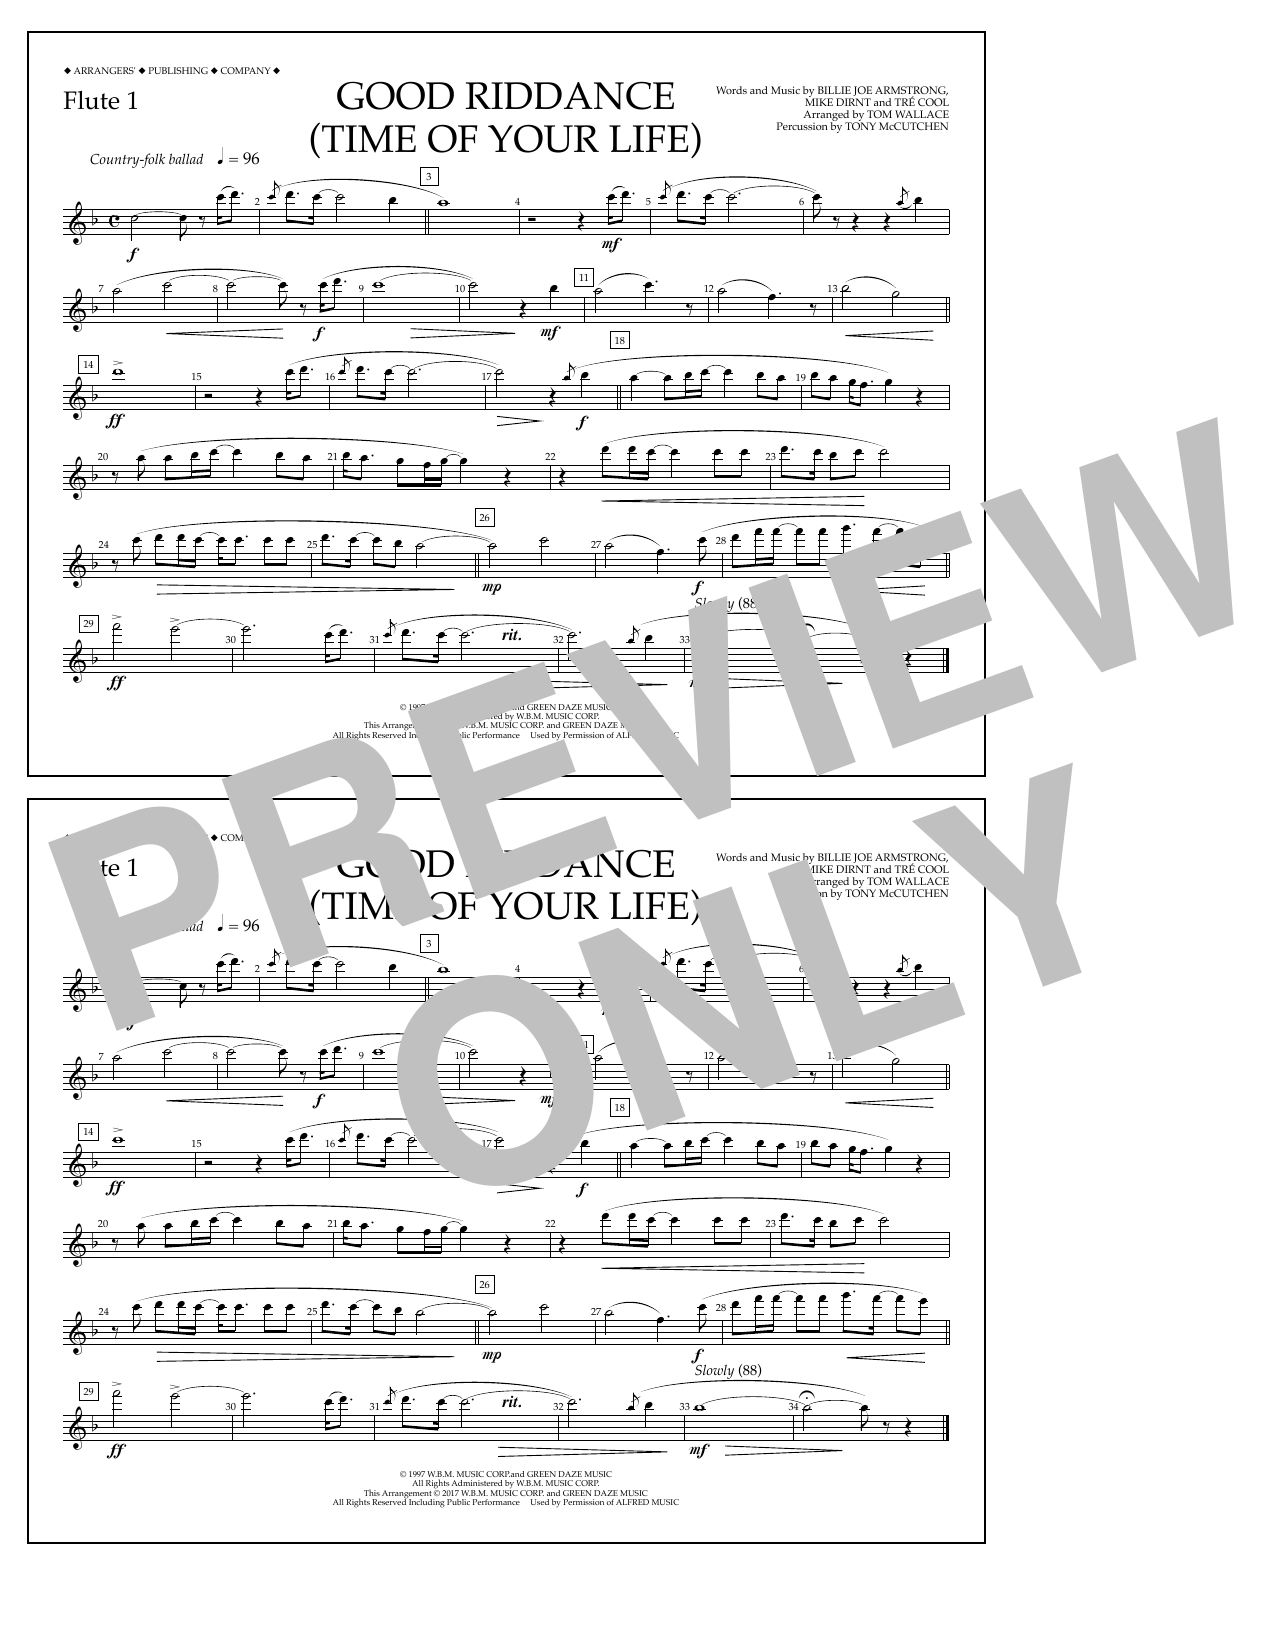 Good Riddance (Time of Your Life) - Flute 1 Sheet Music